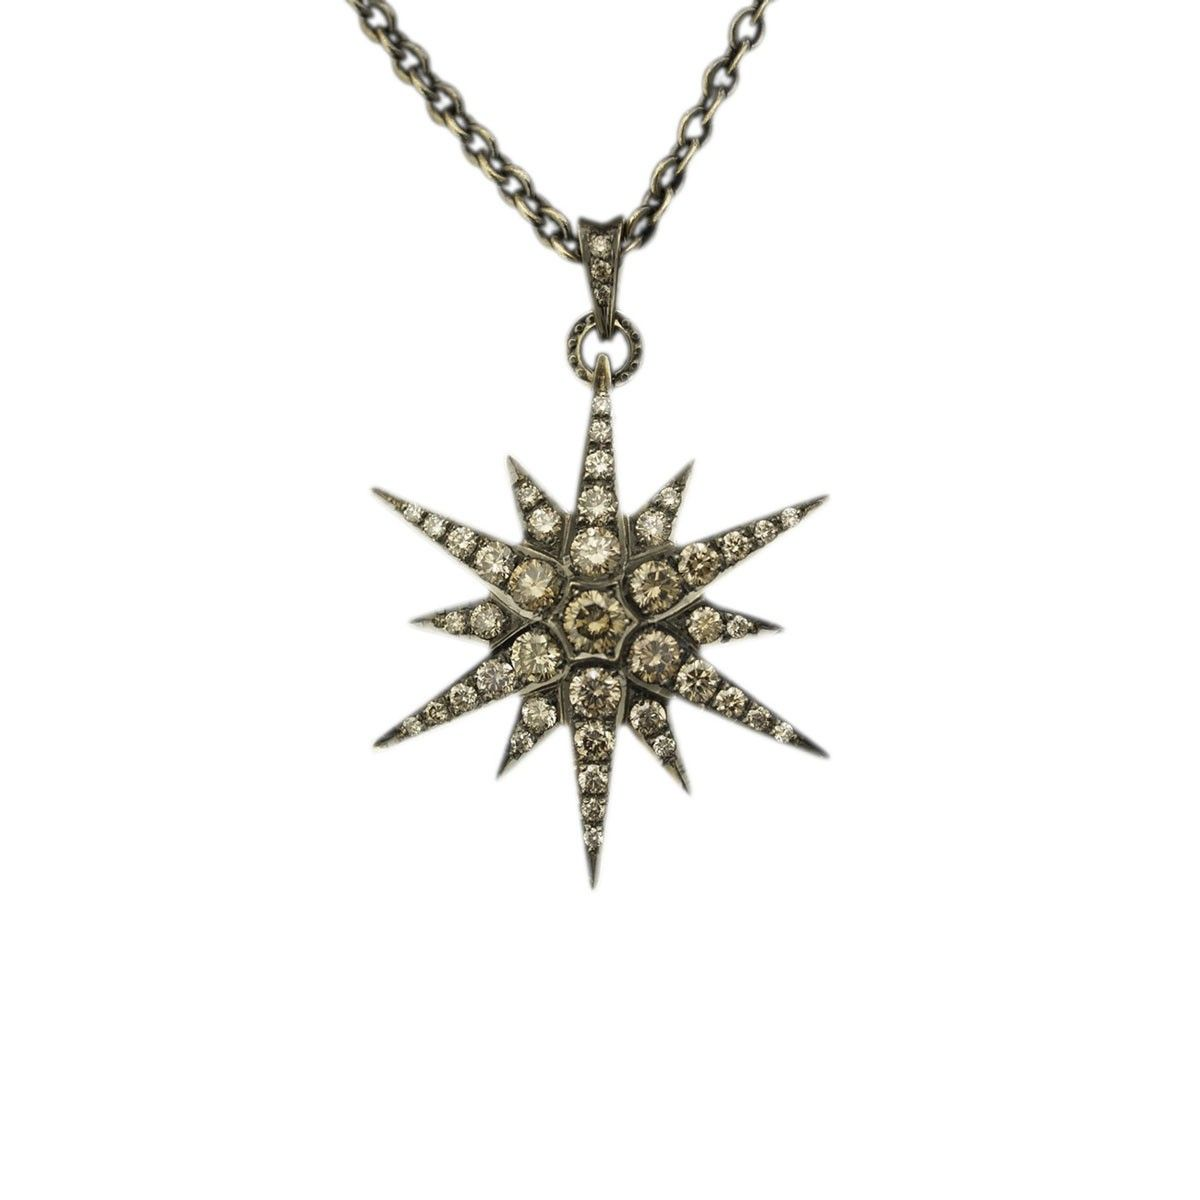 Hern 18k diamond star pendant necklace jewelry pinterest hern 18k diamond star pendant necklace mozeypictures Image collections